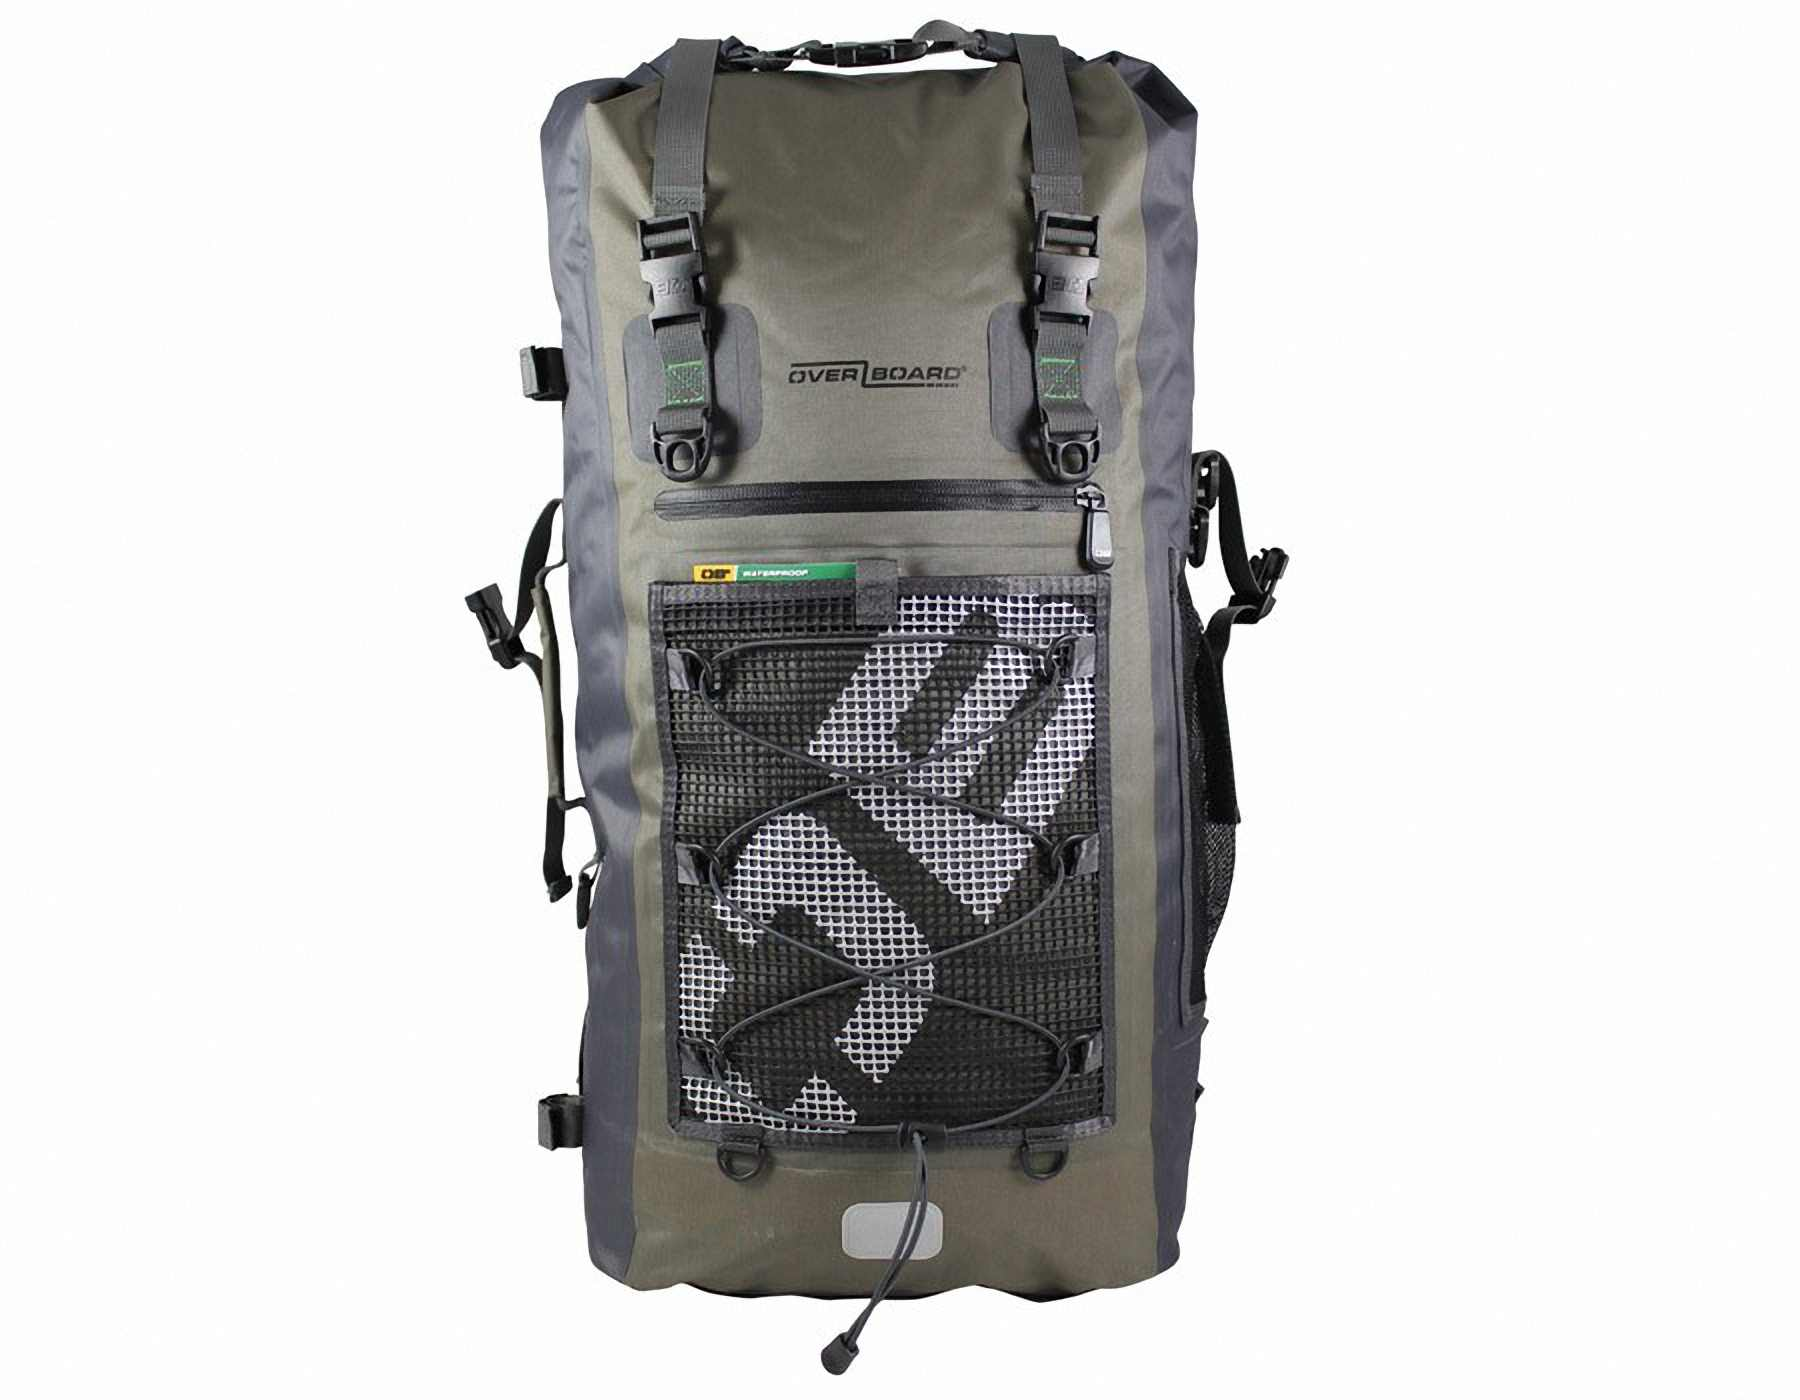 Водонепроницаемый рюкзак OverBoard OB1119G - Ultra-light Waterproof Backpack - 50L. Фото 4